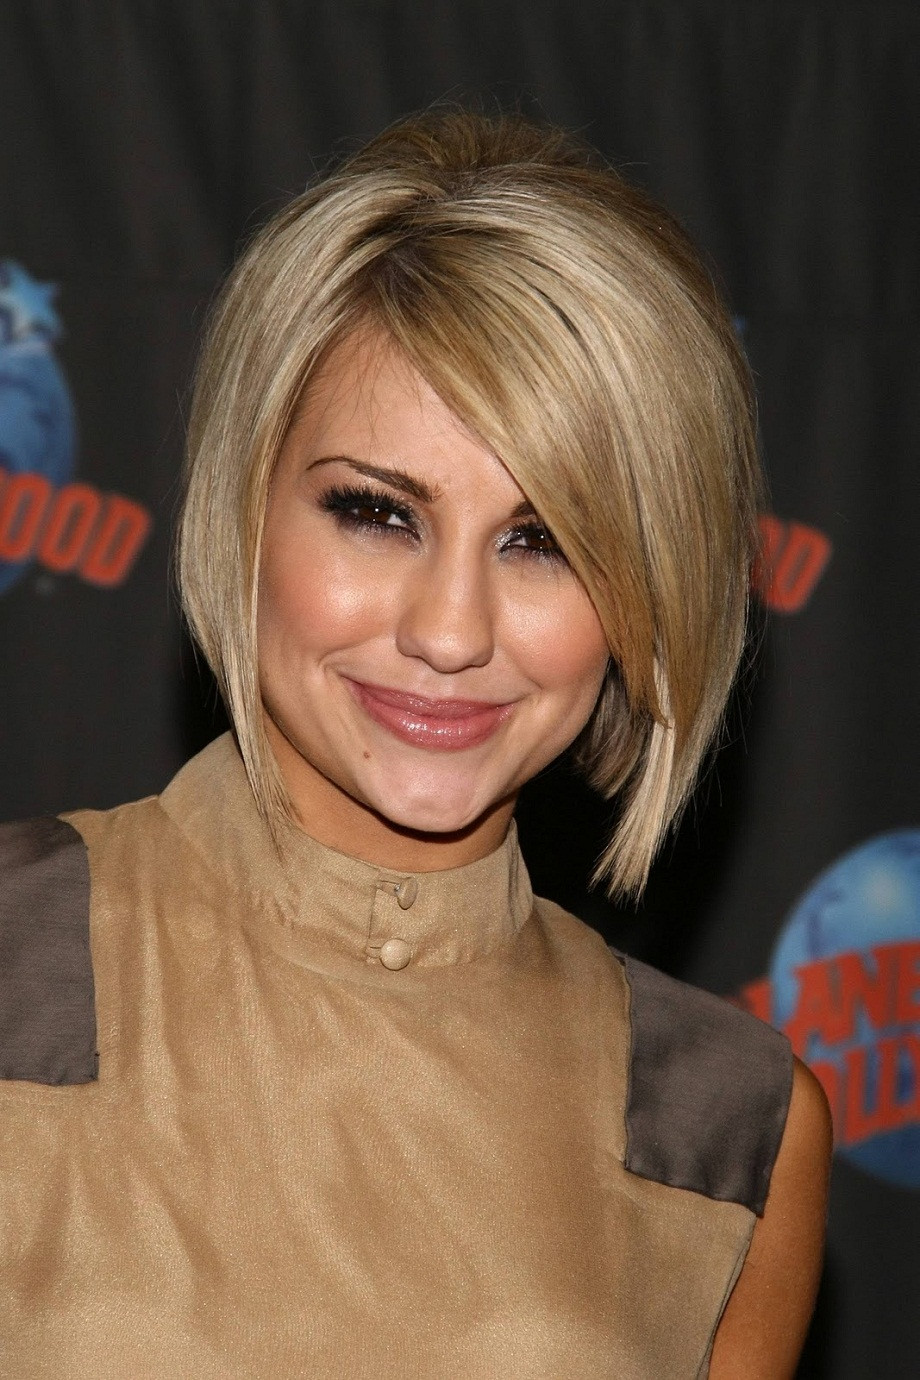 Best ideas about Hairstyles For Bob Cuts . Save or Pin 45 Stunning And Beautiful Collection Bob Hairstyles Now.